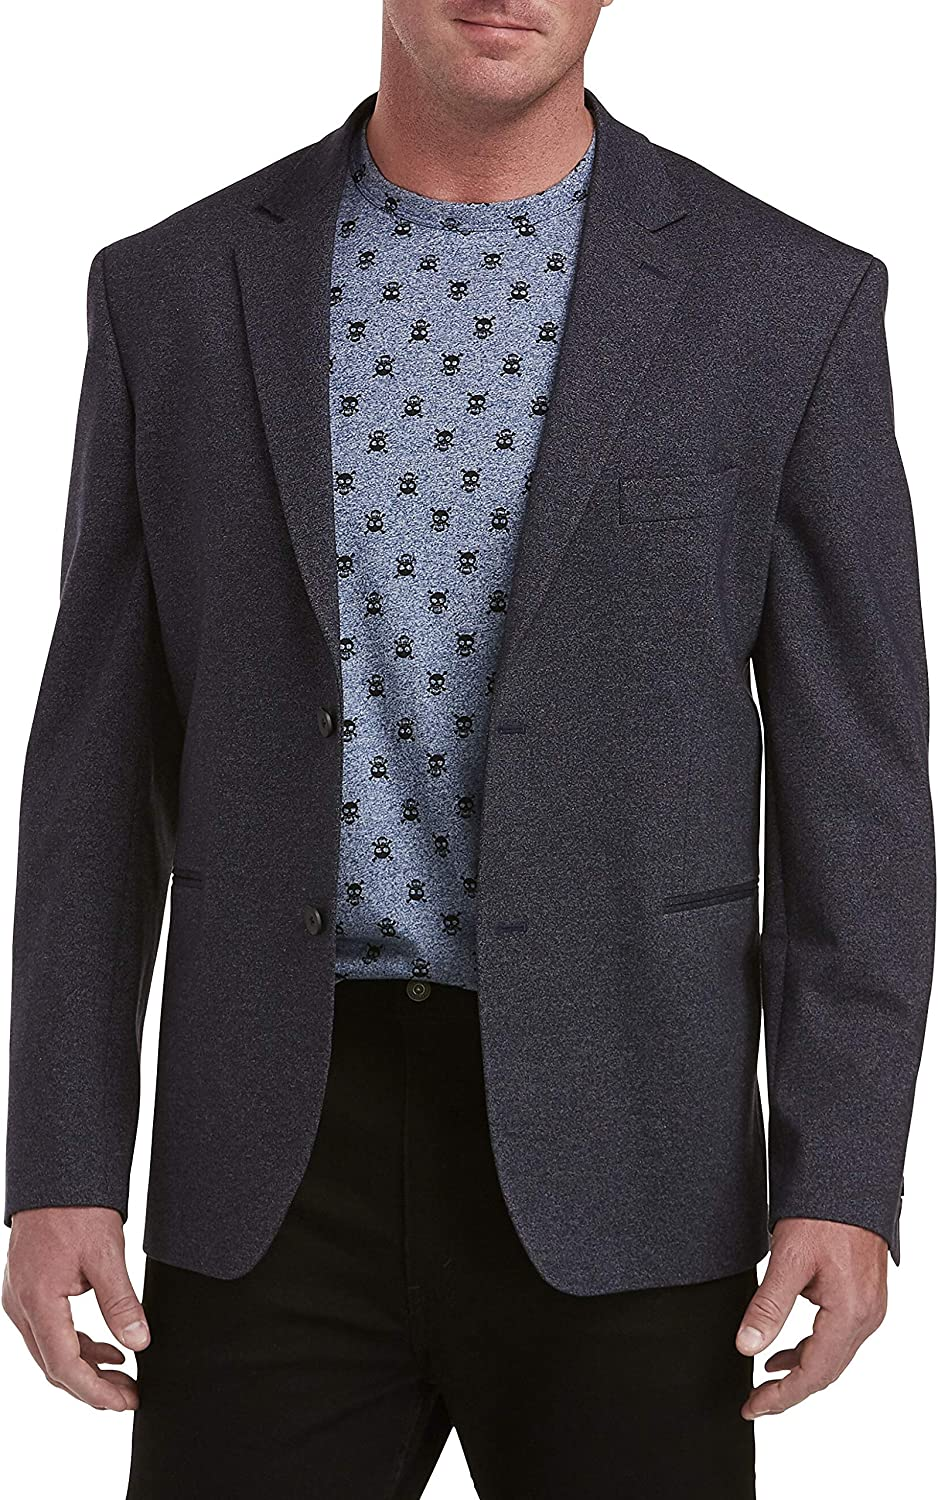 DXL Synrgy Big and Tall Textured Knit Sport Coat, Navy